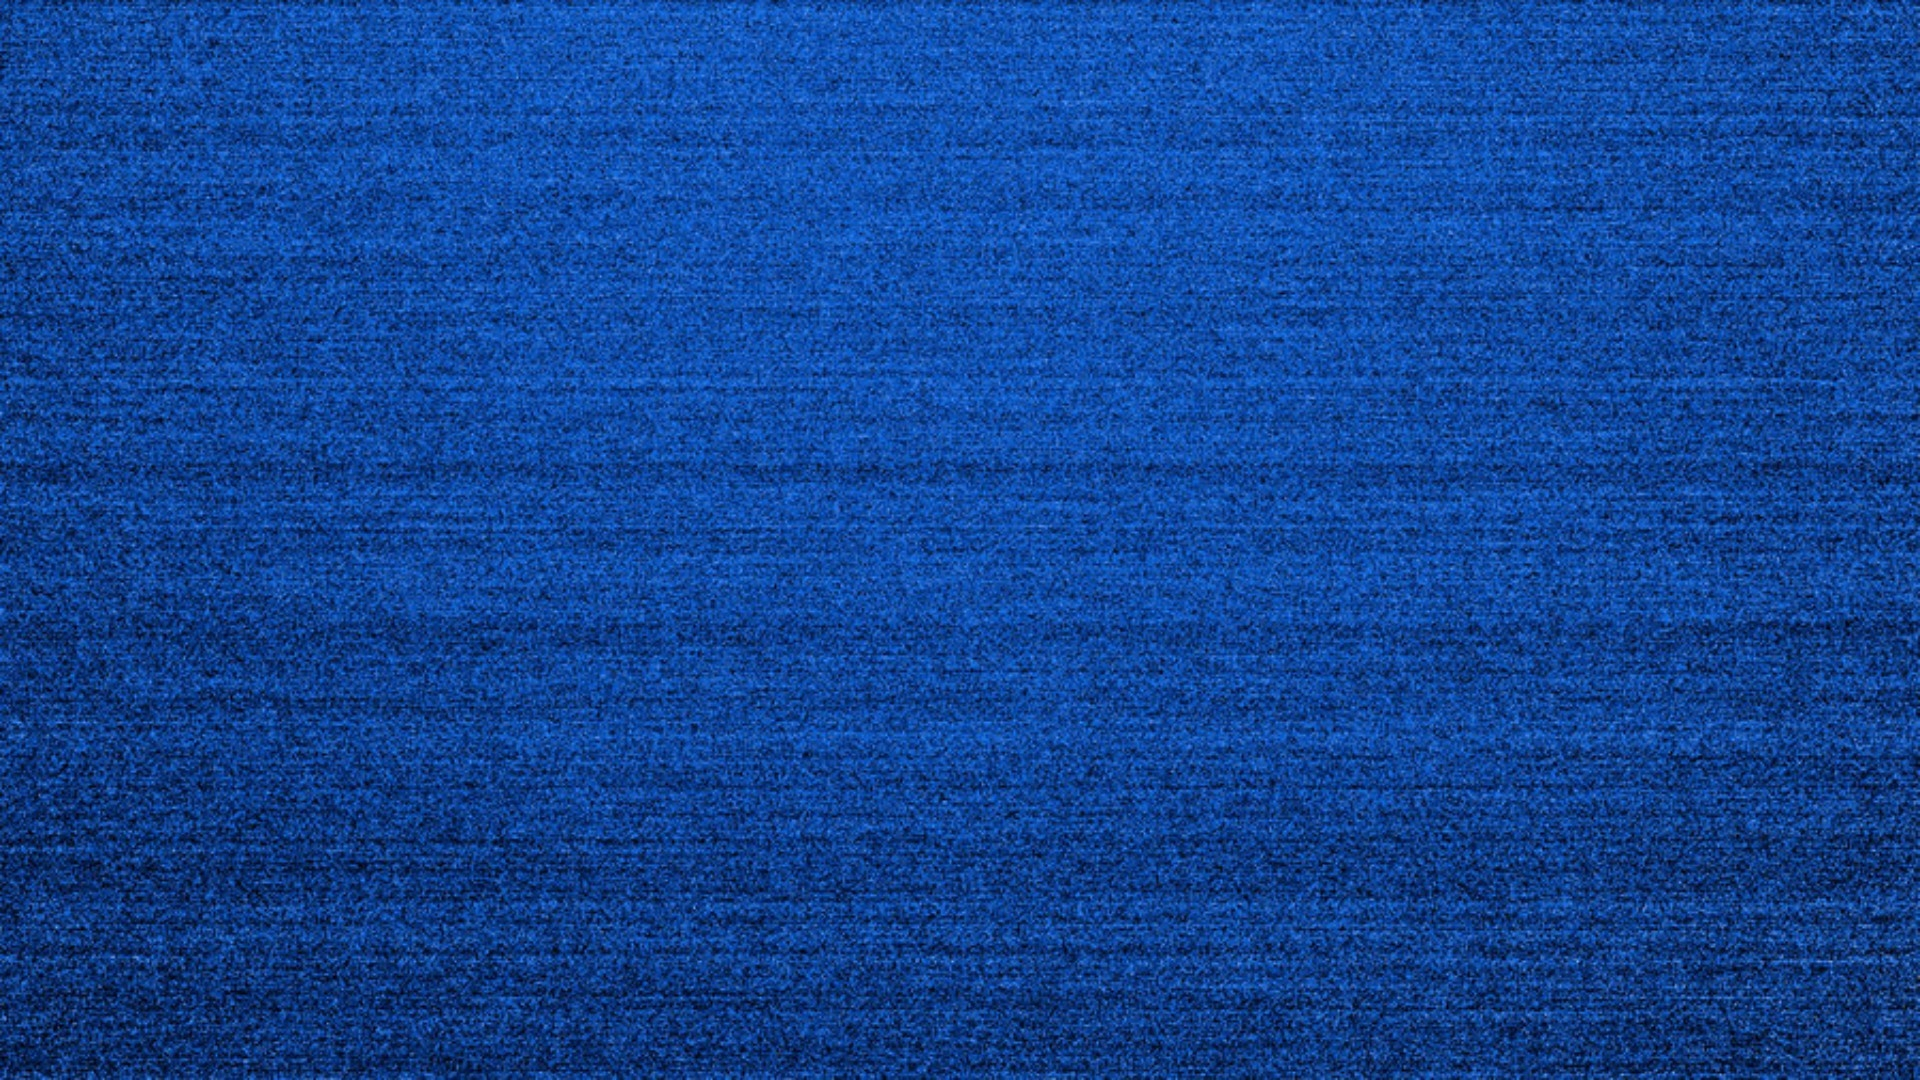 free blue color backgrounds - photo #21